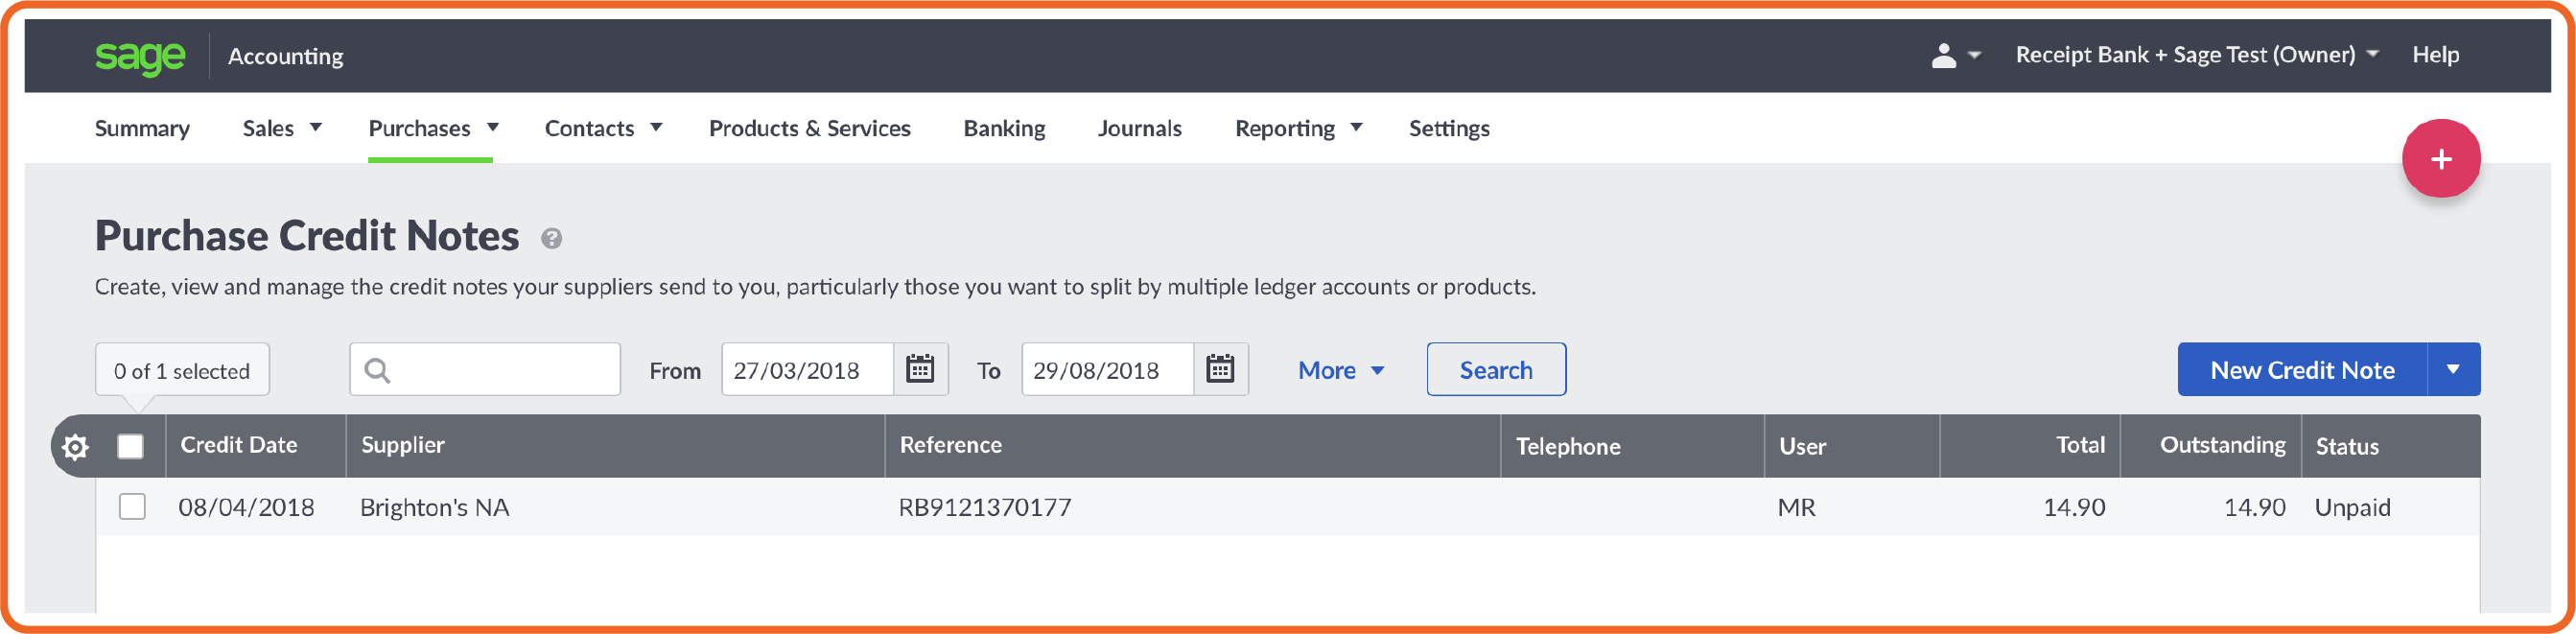 screencapture-accounts-extra-sageone-invoicing-purchase_credit_notes-2018-08-29-10_13_44.png